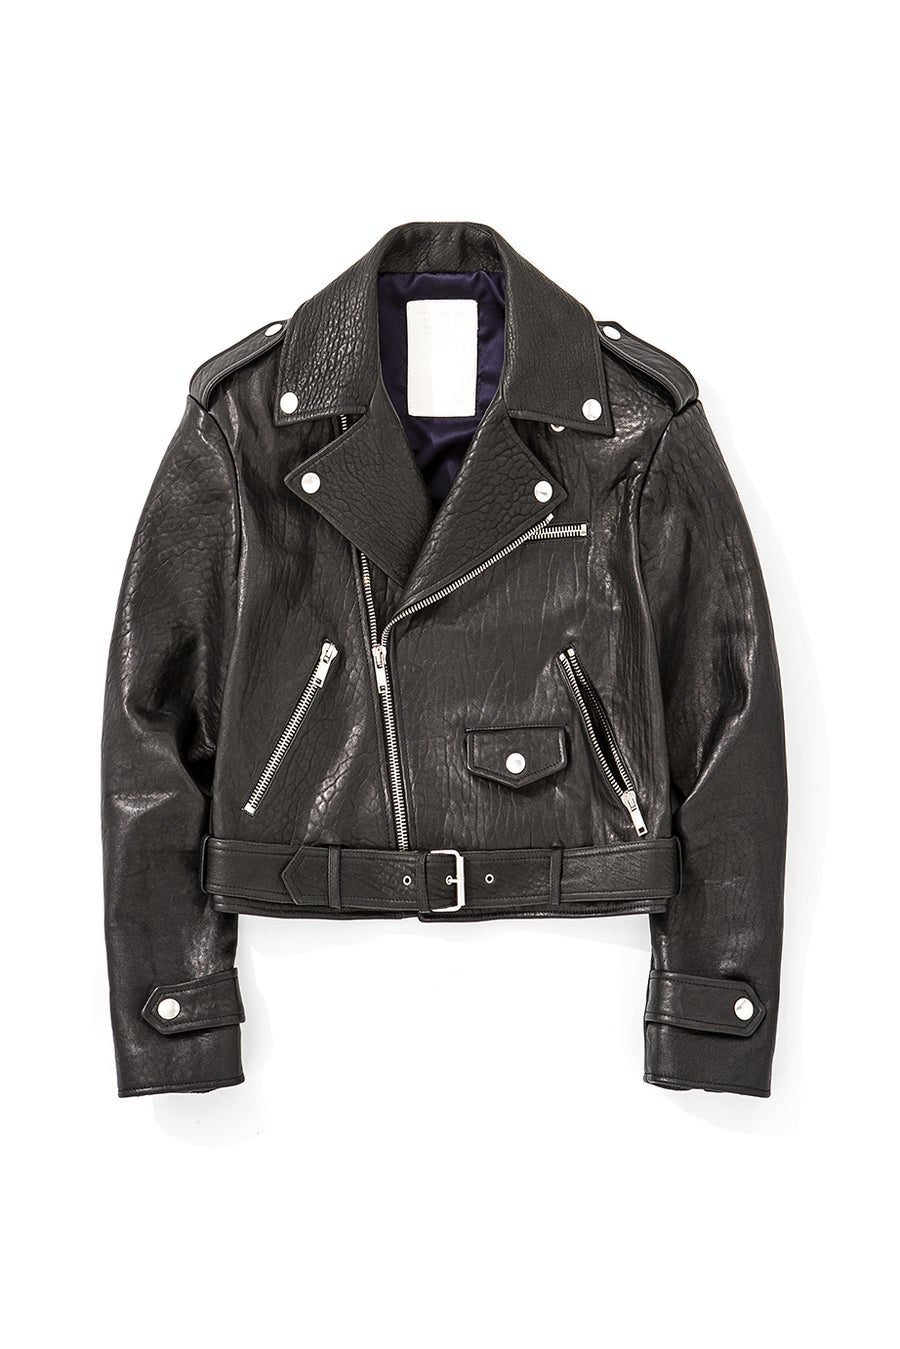 Image of Black Leather Biker